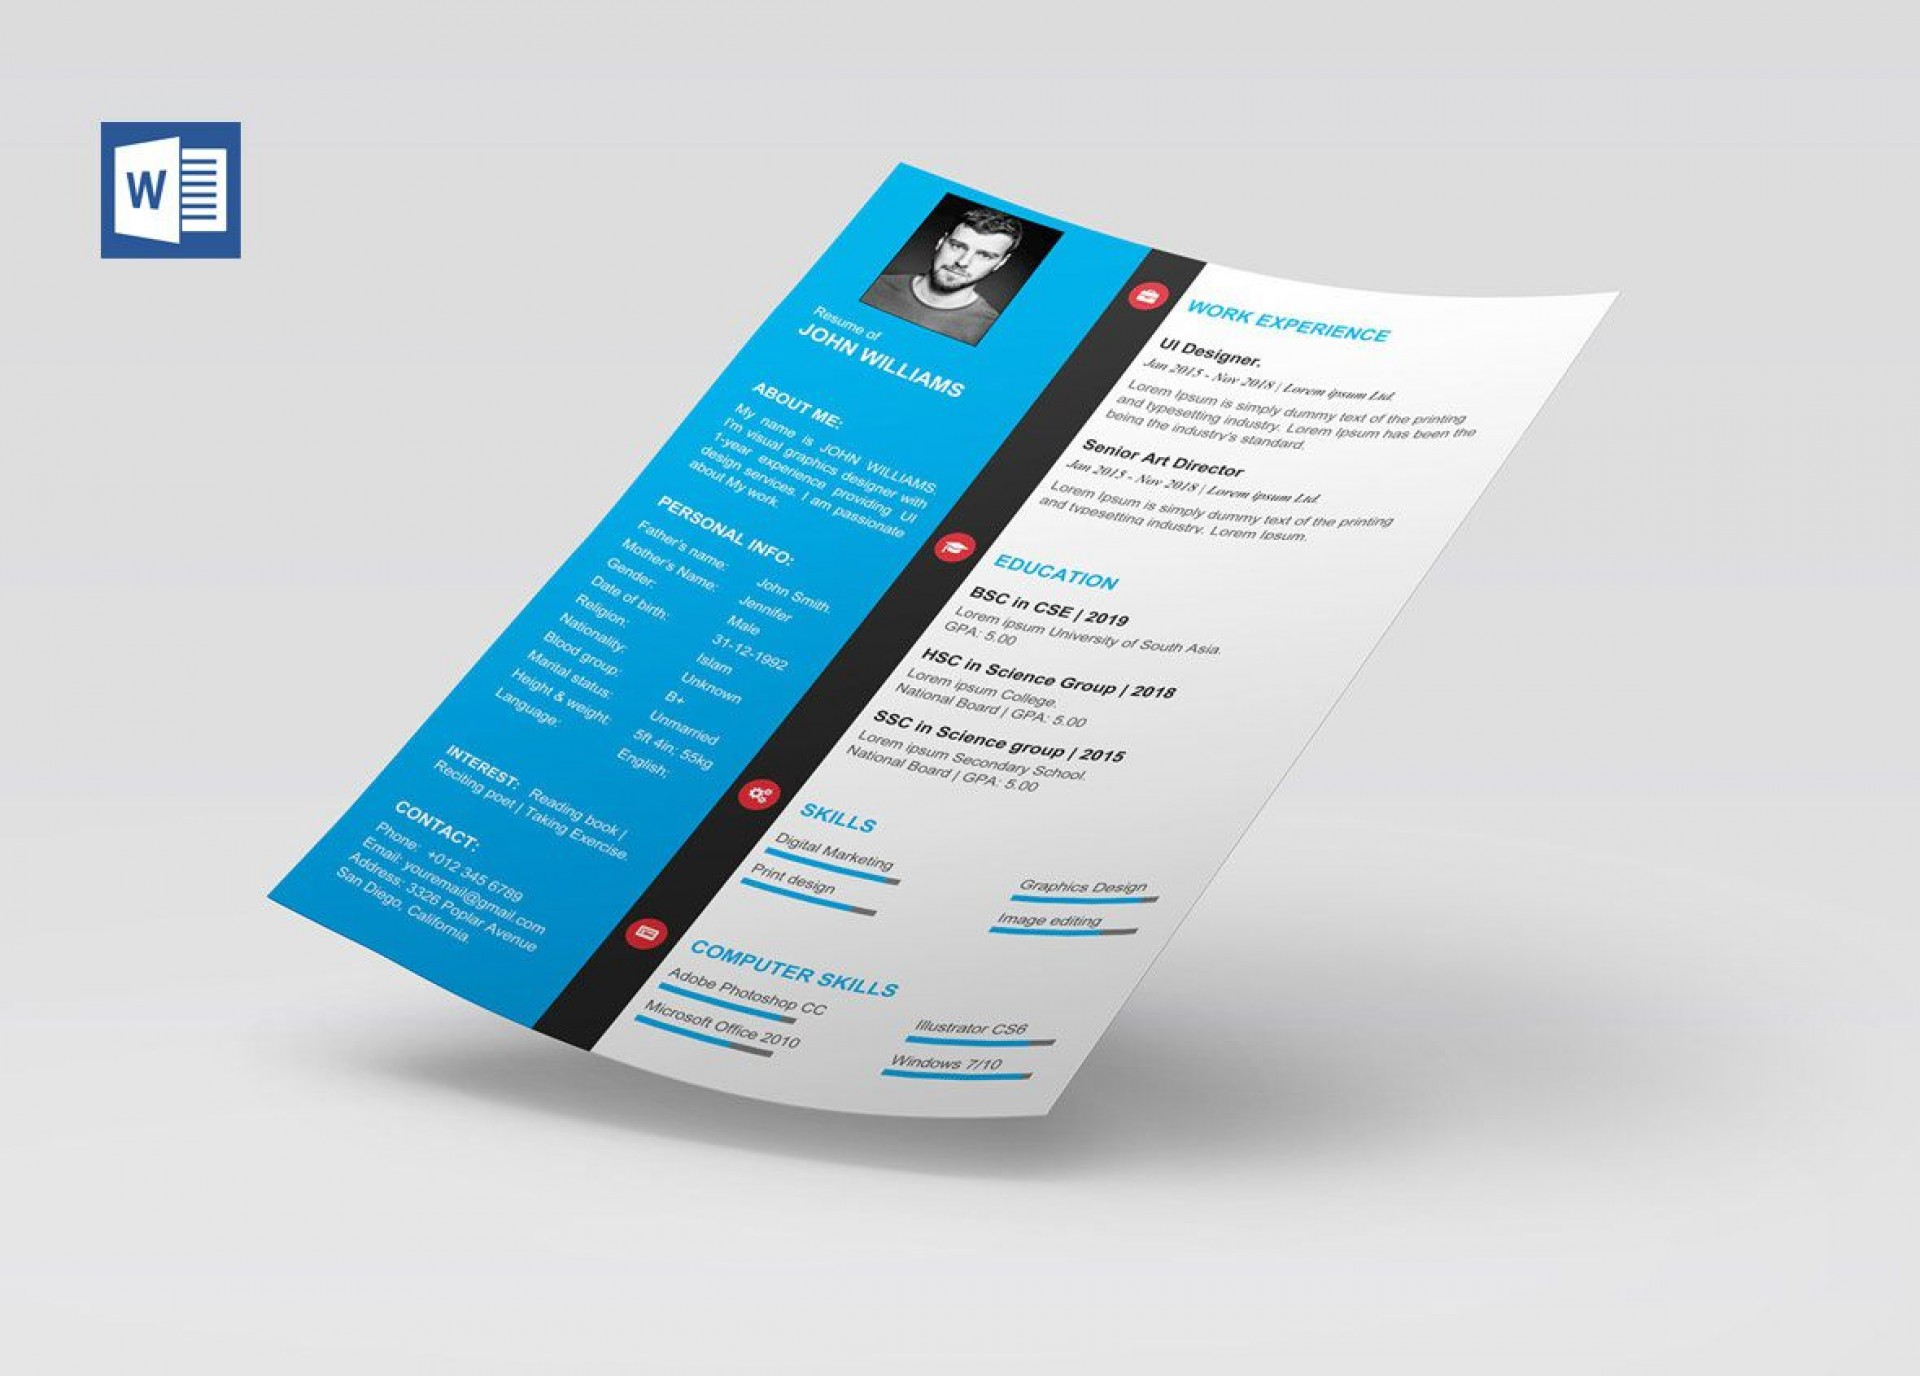 007 Formidable Student Resume Template Word Free Download High Definition  College Microsoft1920